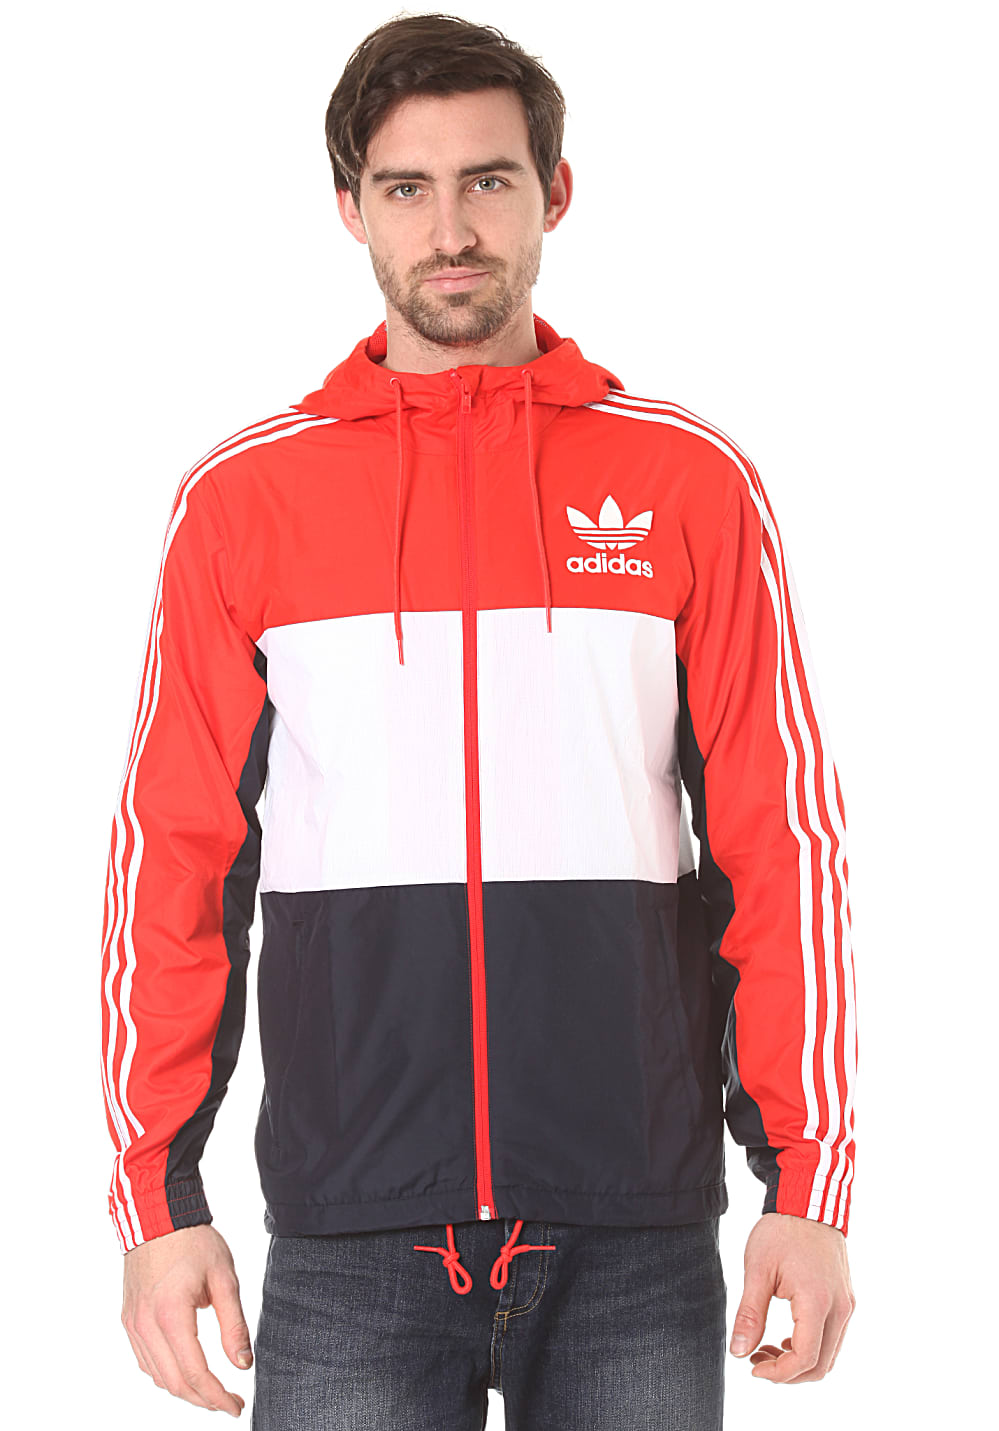 adidas clfn jacke f r herren blau planet sports. Black Bedroom Furniture Sets. Home Design Ideas